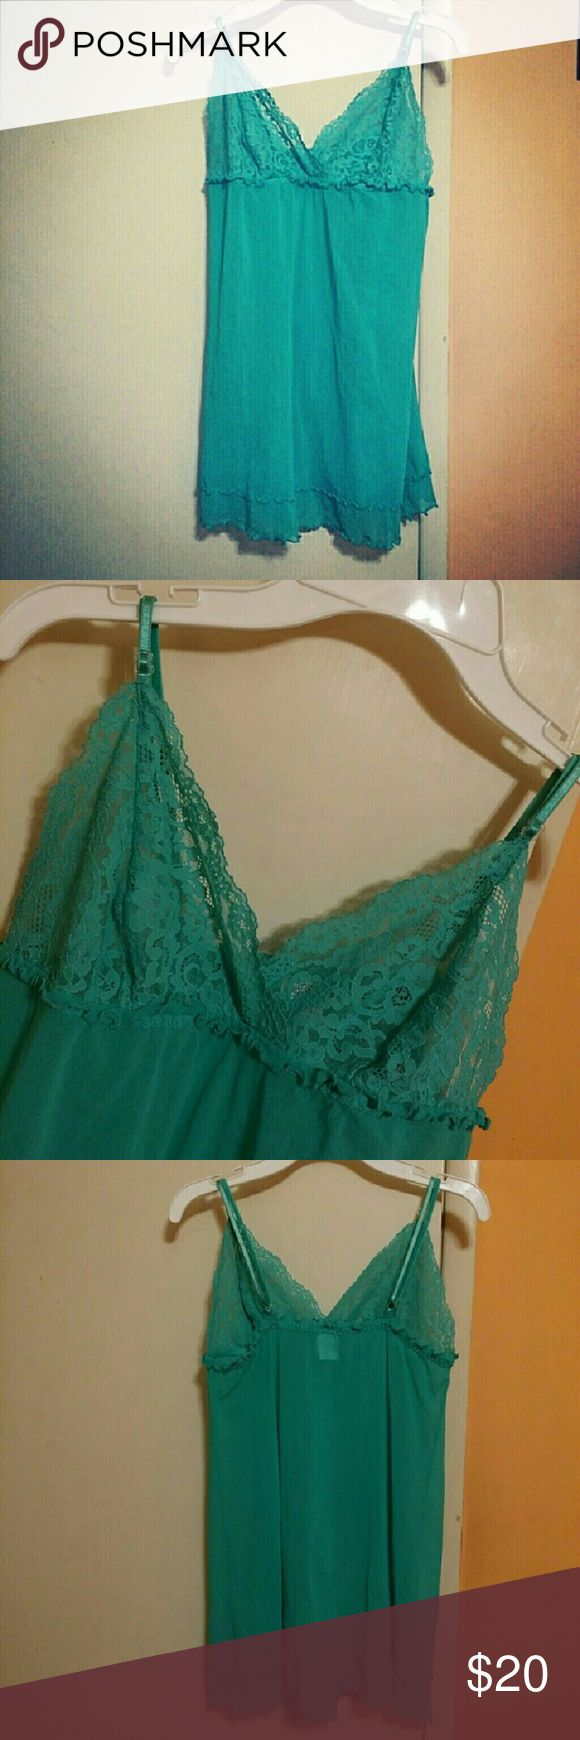 *NWOT!* Hanky Panky Turquoise Lace Nighty!!! Brand new without tags. Beautiful lacey turquoise nighty/slip by Hanky Panky. 100% Authentic. Size Medium. Never worn. Adjustable shoulder straps. Hanky Panky Intimates & Sleepwear Chemises & Slips